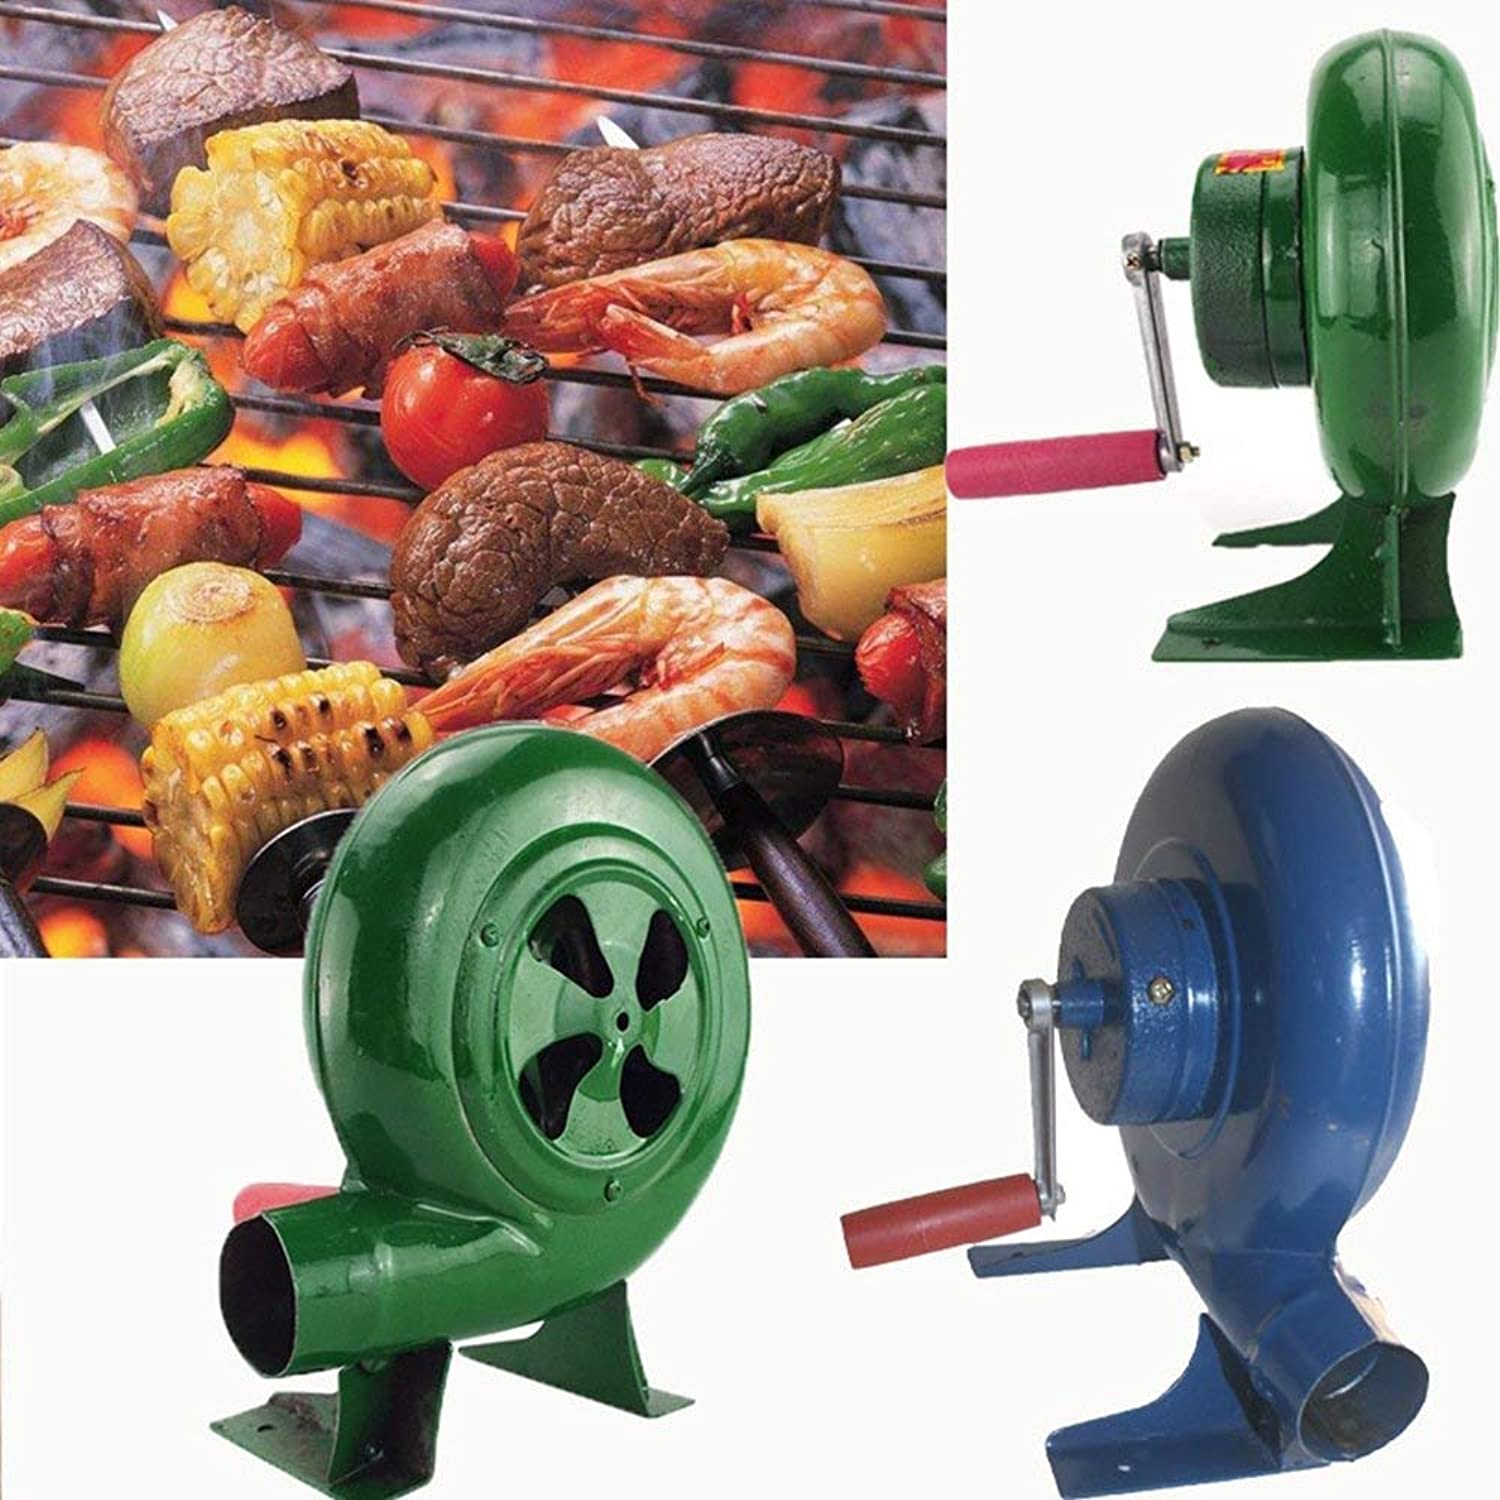 Barbecue Blower Manual Forging Blower Barbecue Fan Manual Bellows Lighter Fan (Green, 150w)